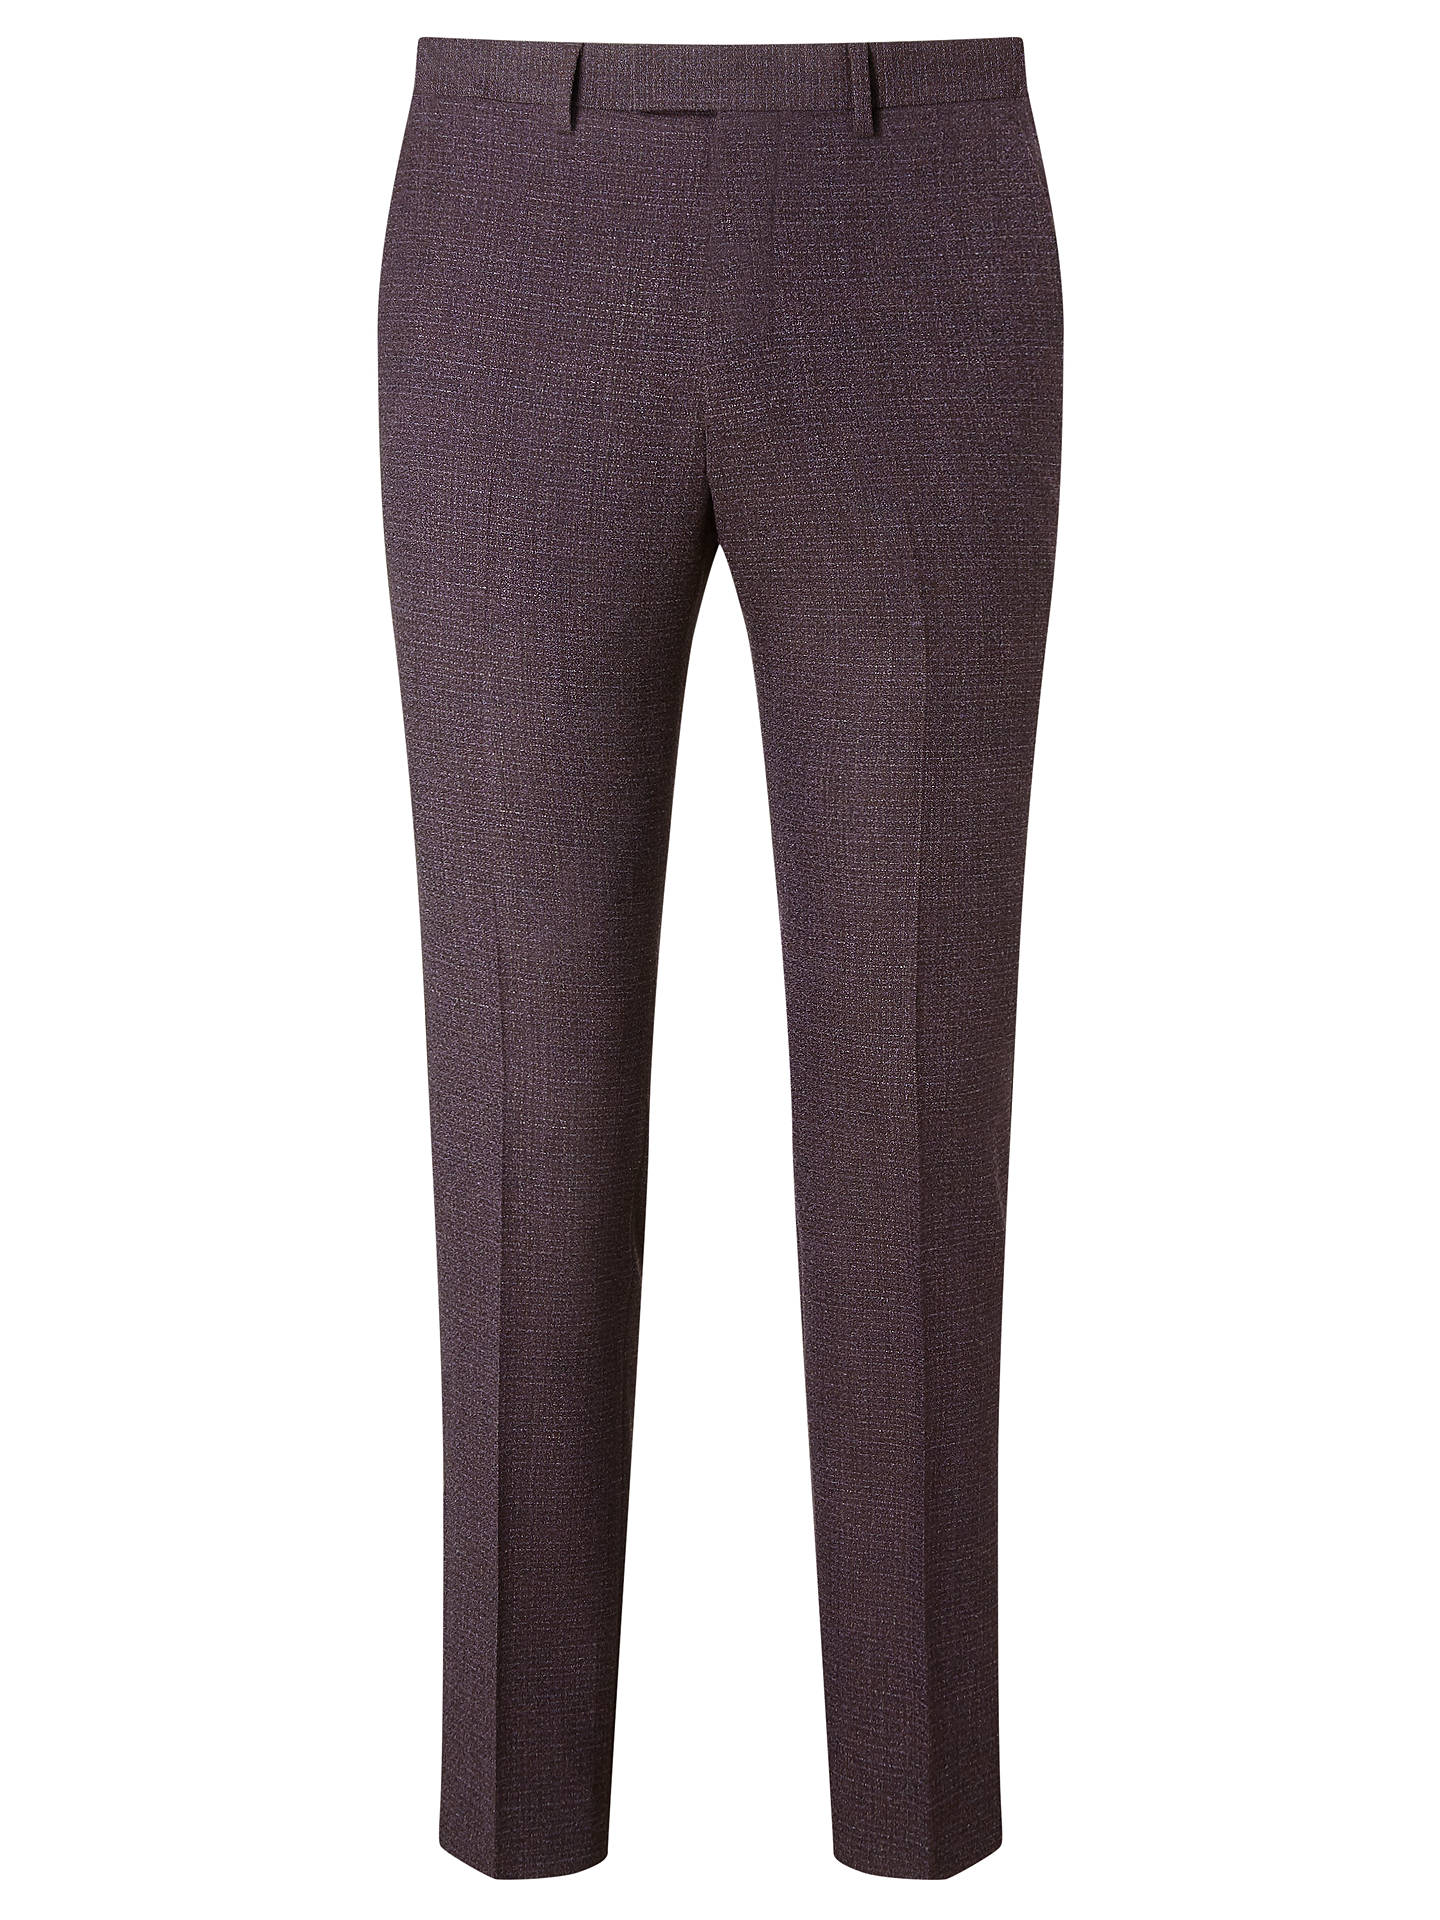 Kin Lexham Textured Slim Fit Suit Trousers Oxblood At